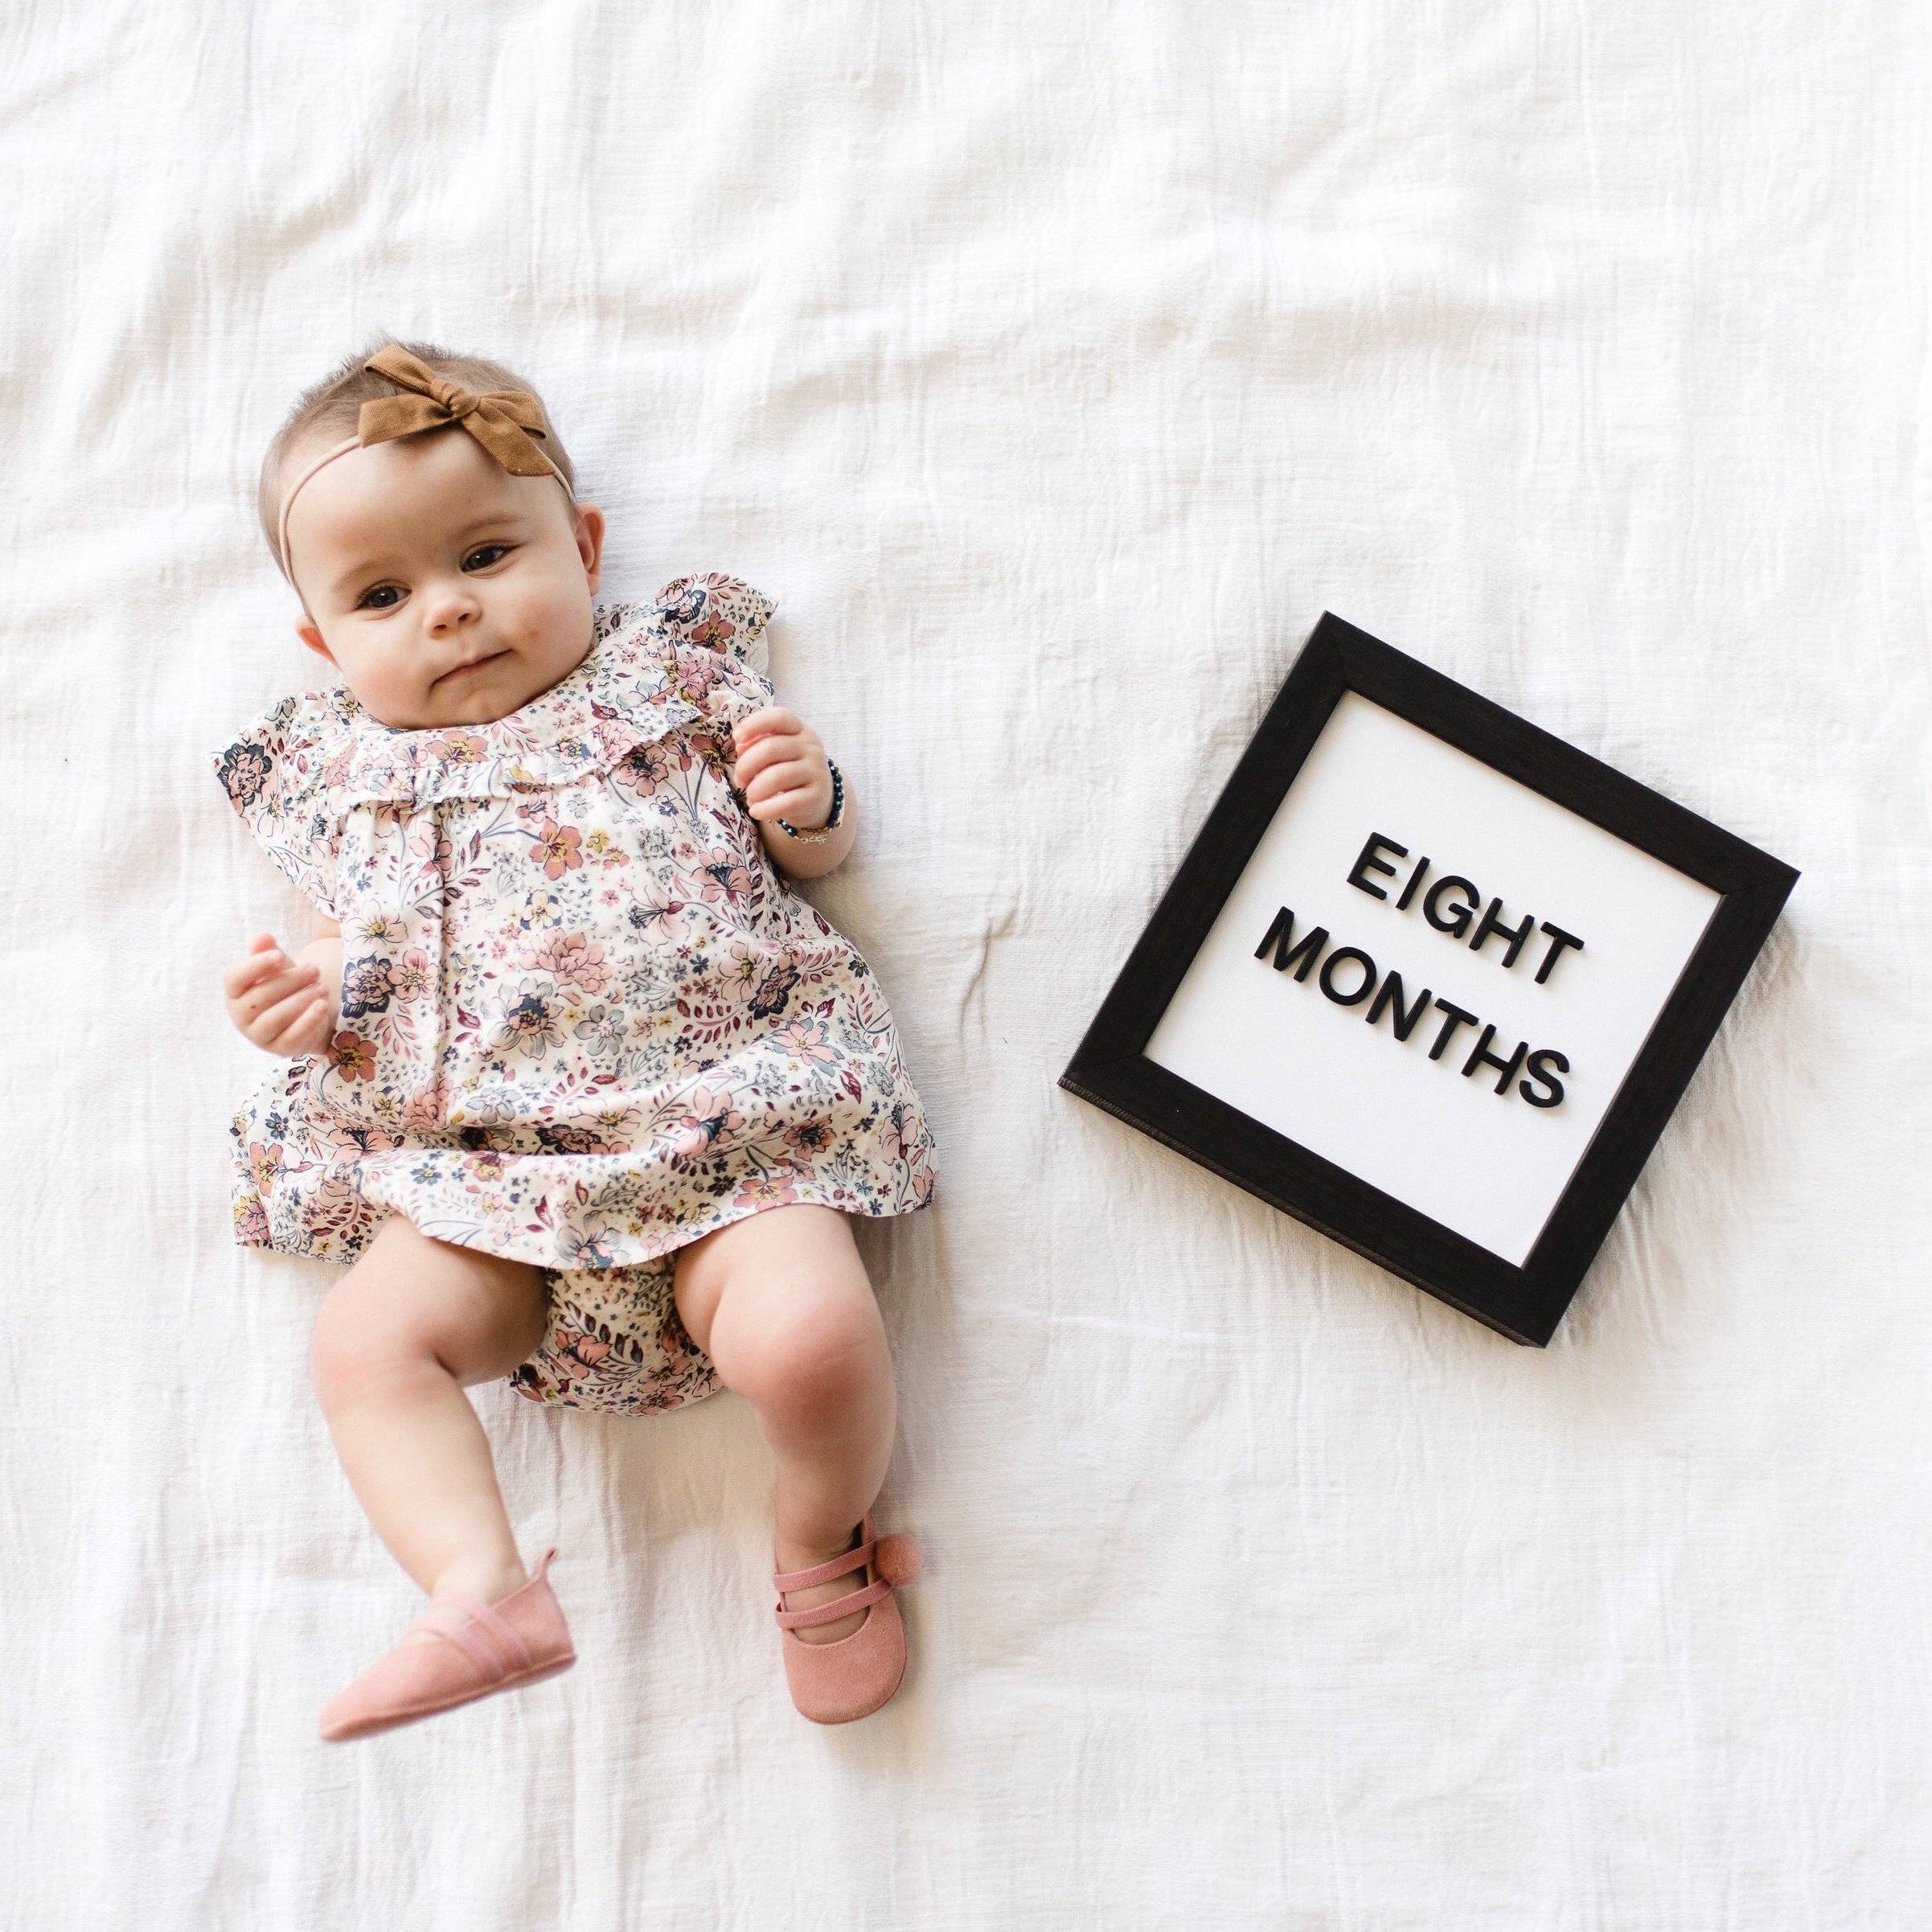 baby laying next to magnetic letter board